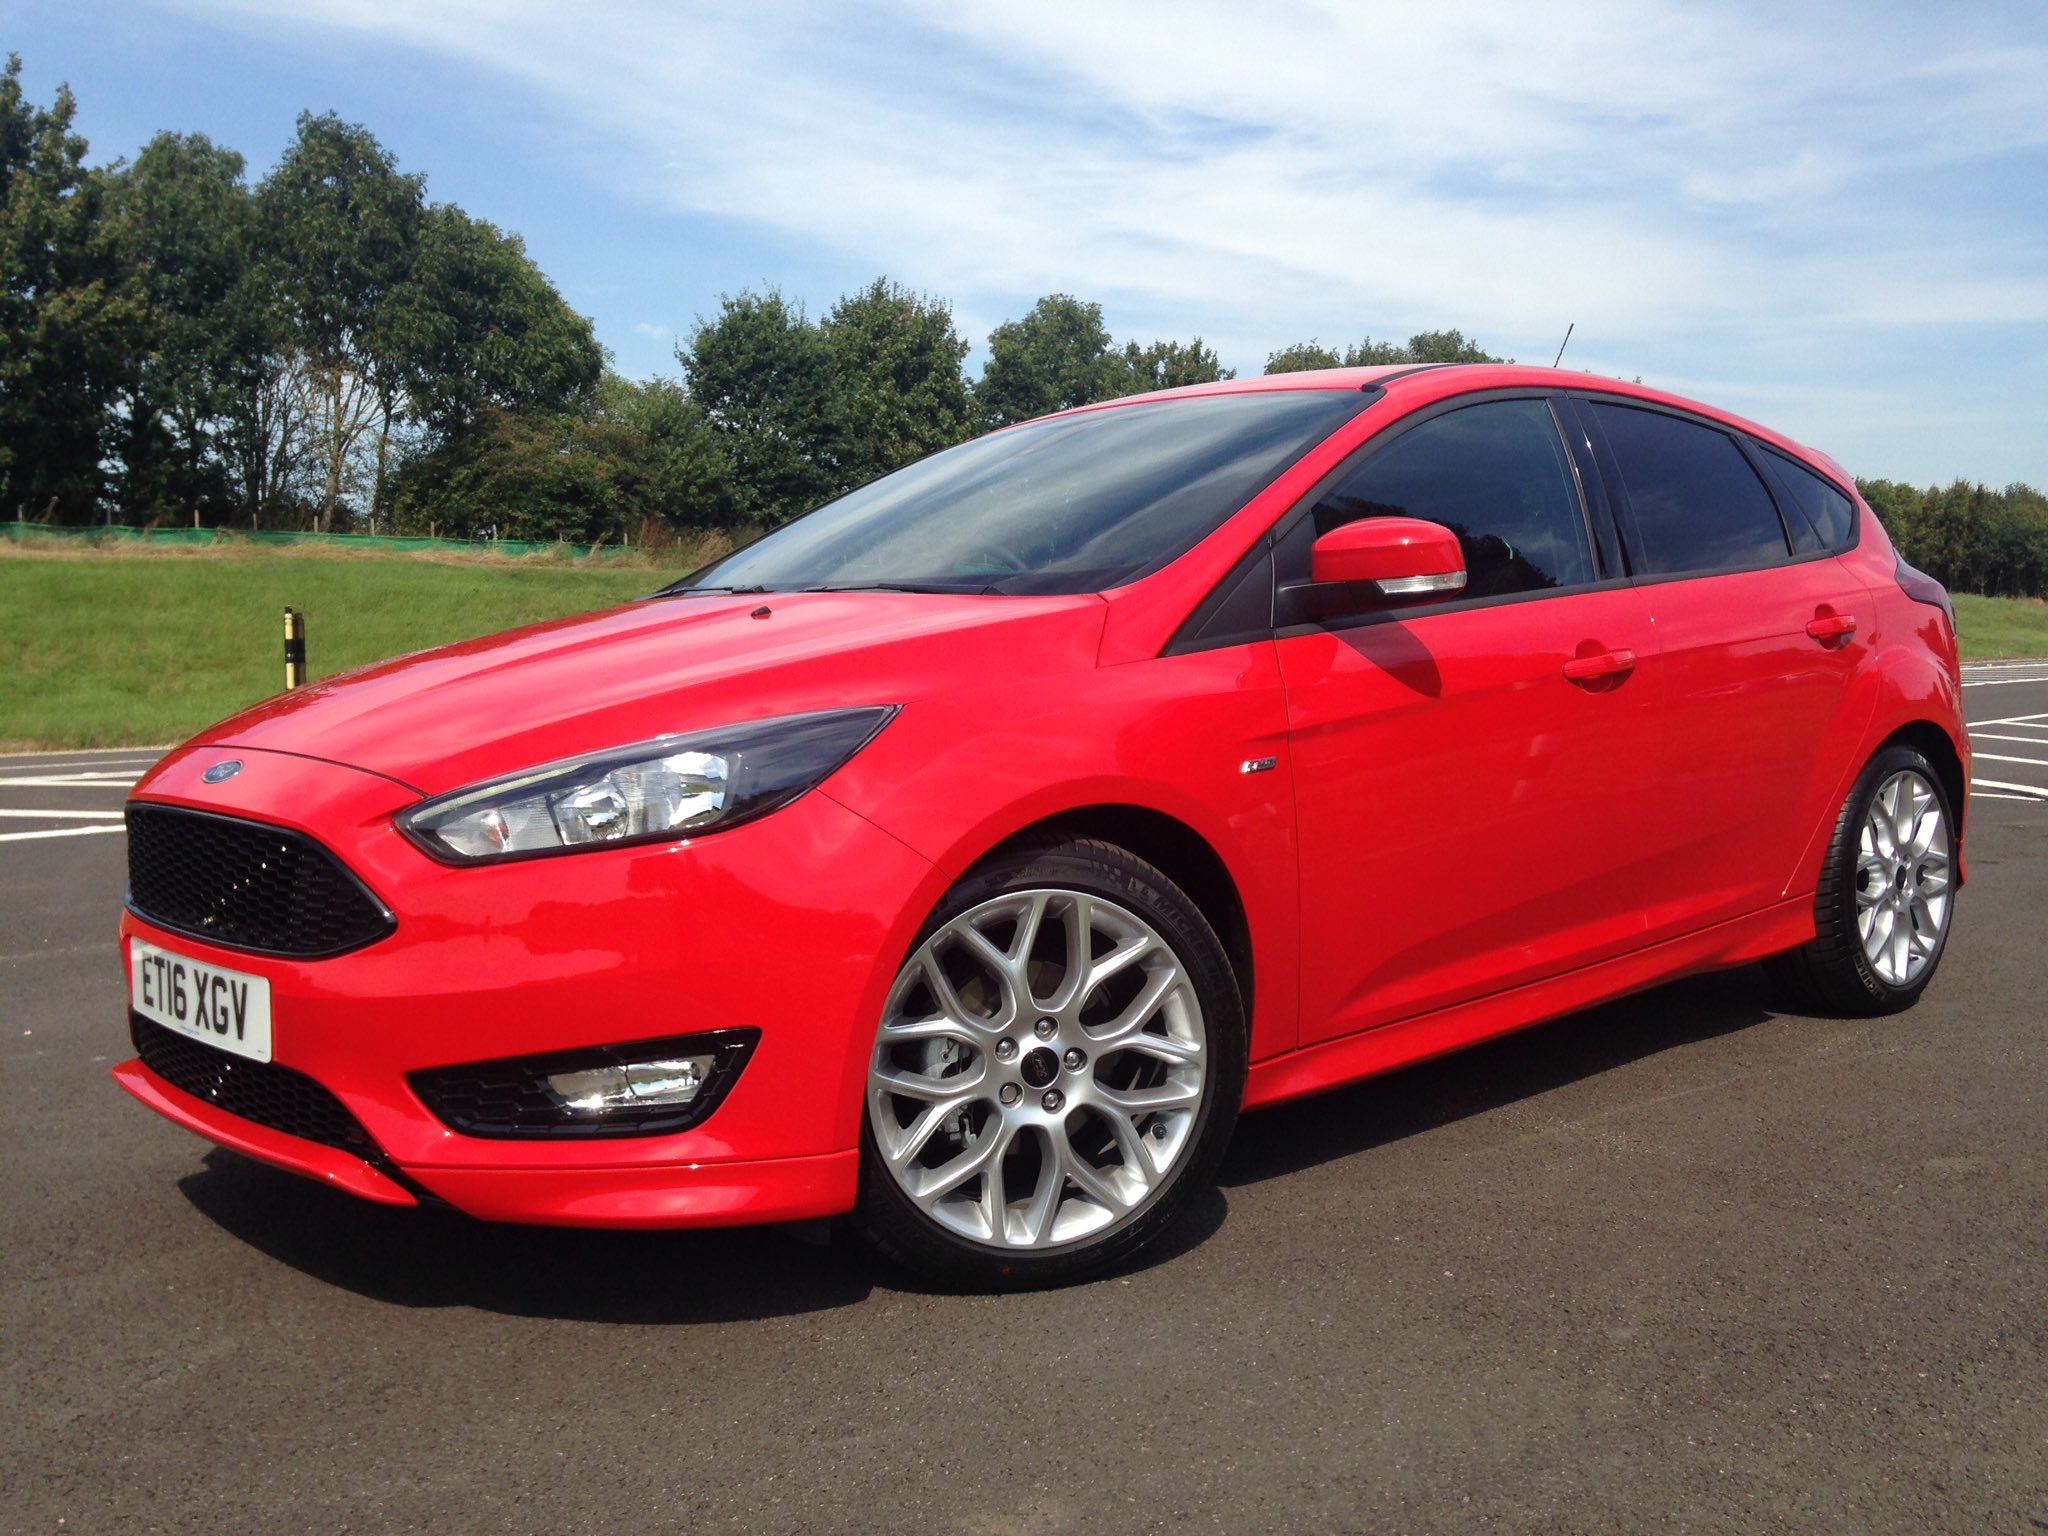 tim pitt on twitter first look at the new ford focus st line optional 18 inch alloys are part. Black Bedroom Furniture Sets. Home Design Ideas